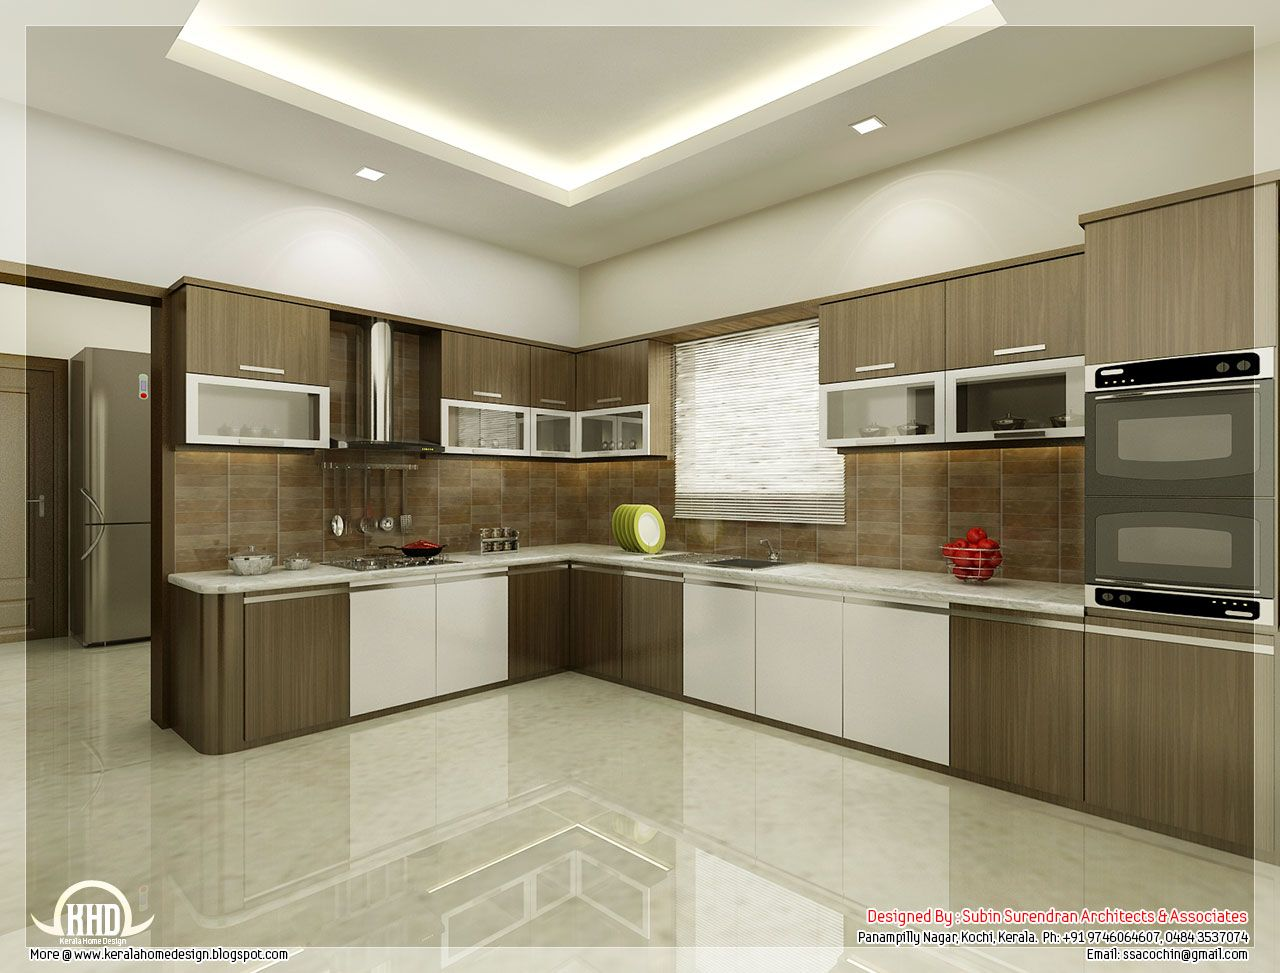 Attractive Kitchen Dining Interiors Kerala Home Design Floor Plans Home Luxury Modern  Home Interior Design Haynes House Steve